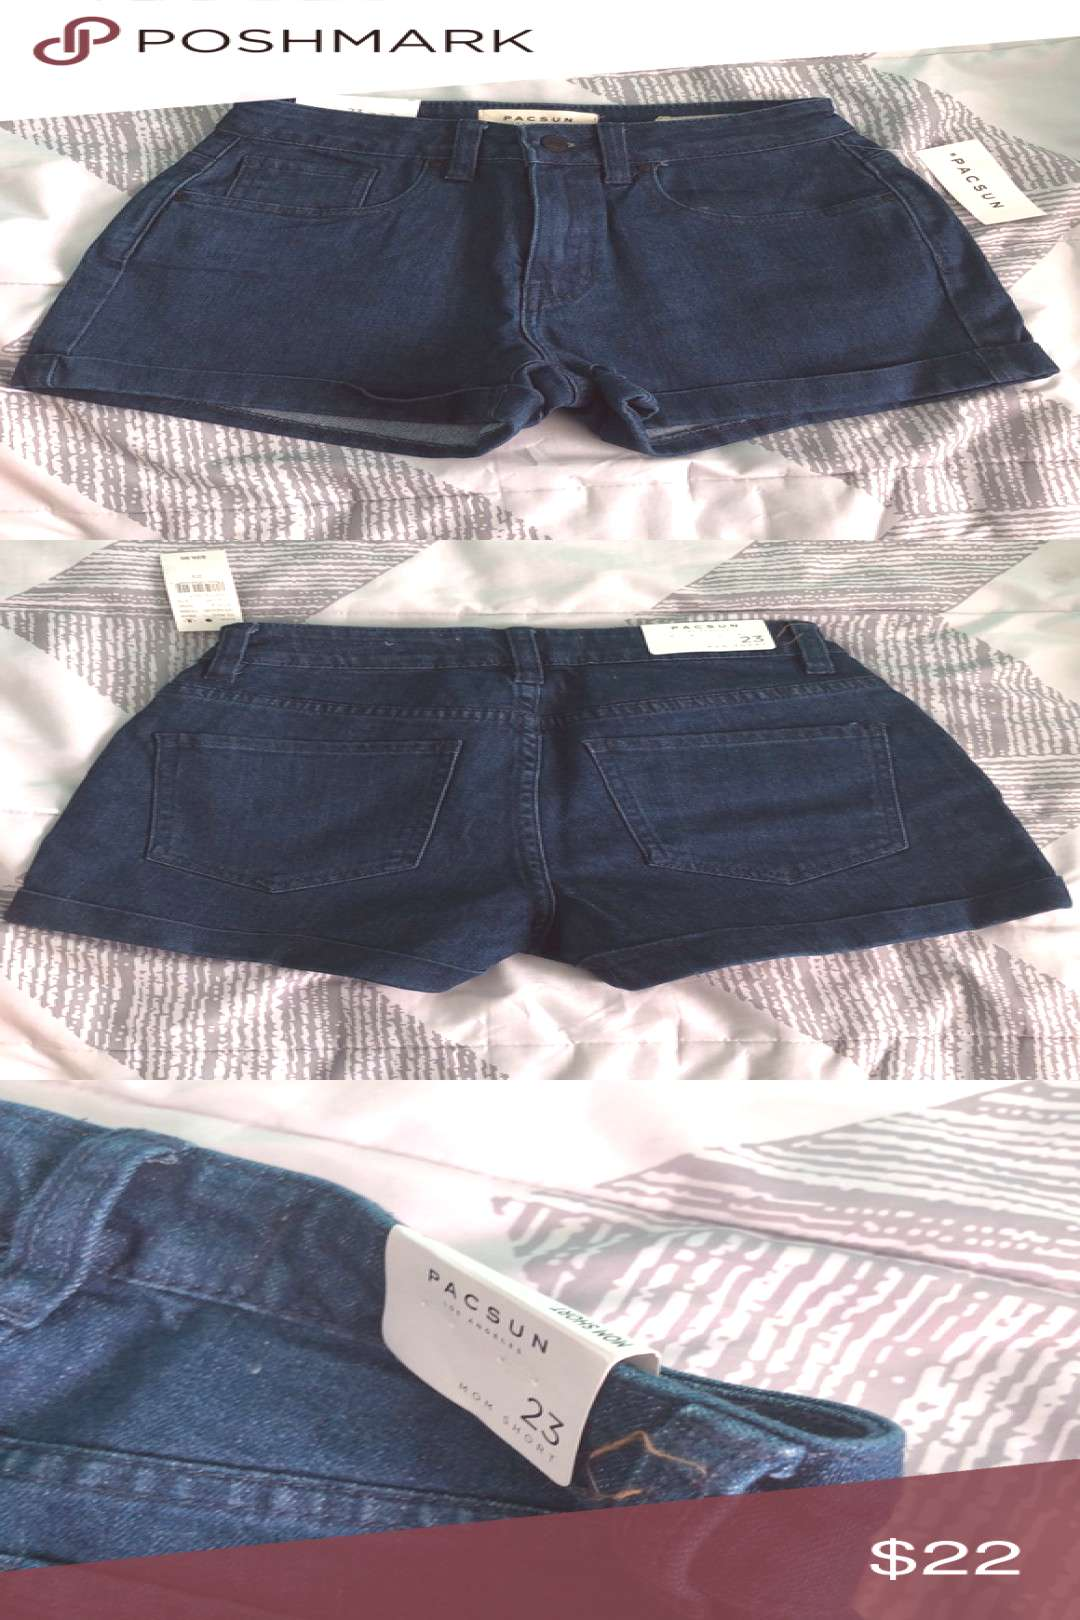 I just added this listing on Poshmark *NEW W/ TAGS* Pacsun Mom Shorts.